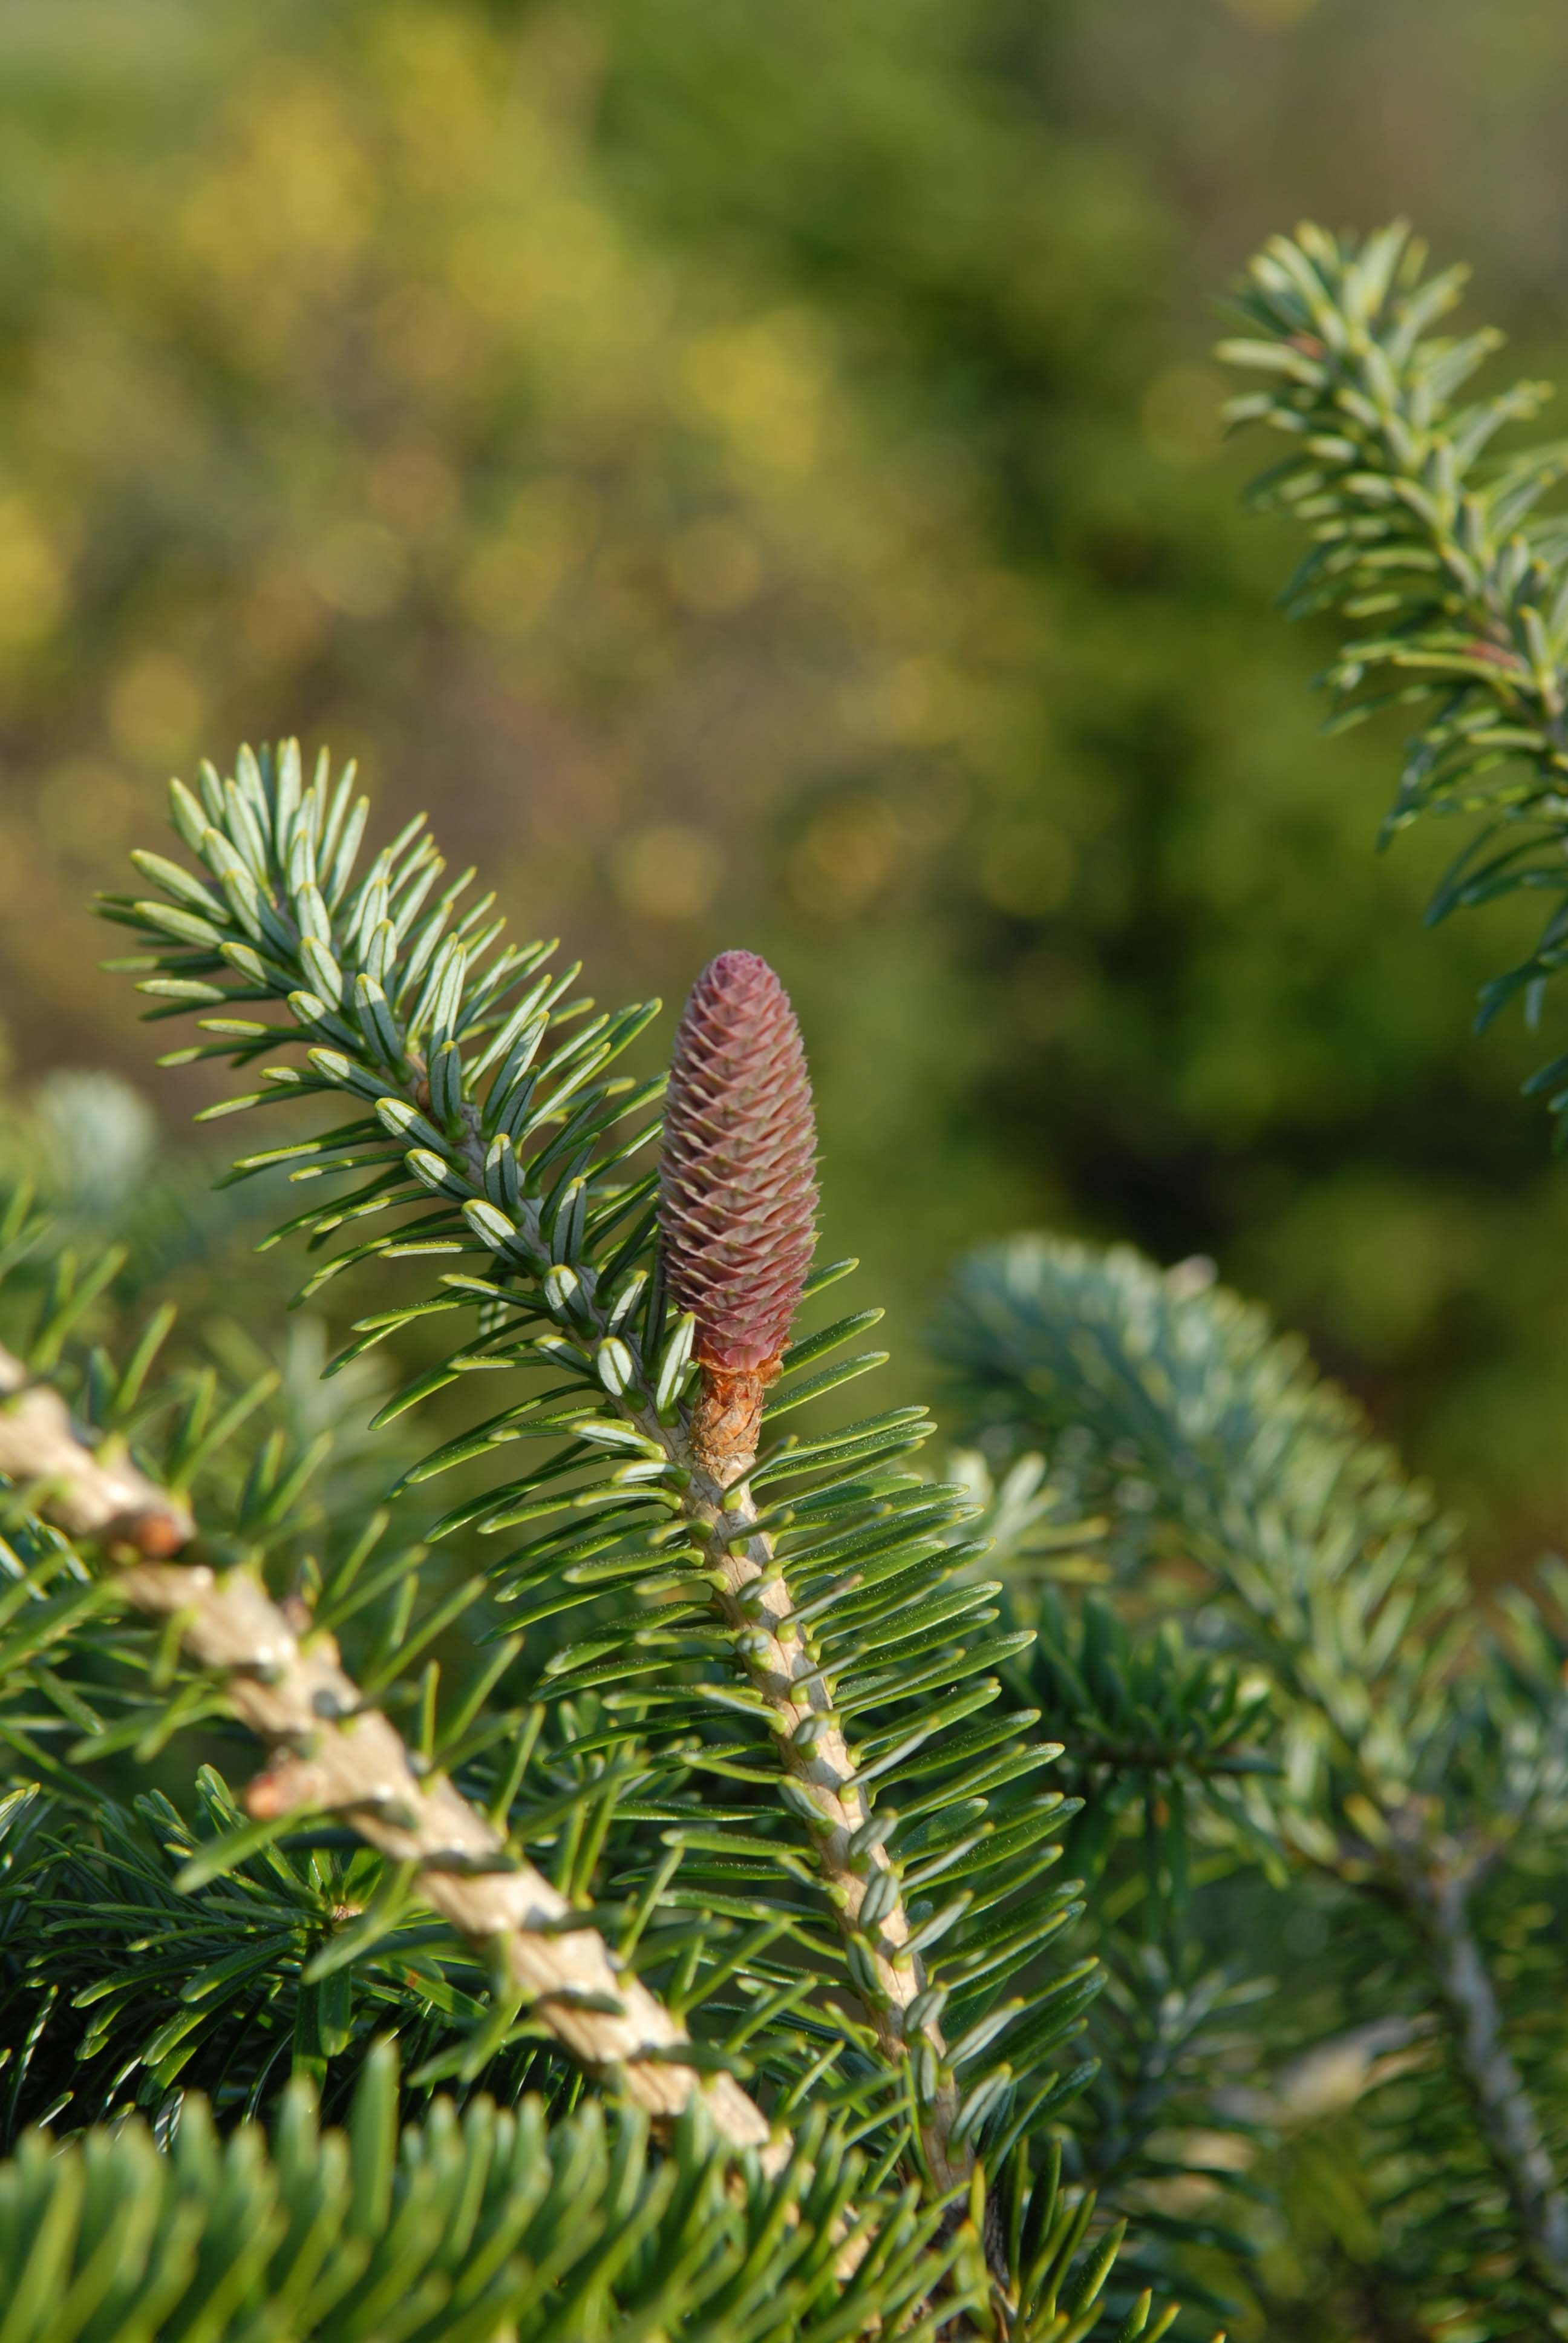 Immature female cones (seed cones) on Momi fir.